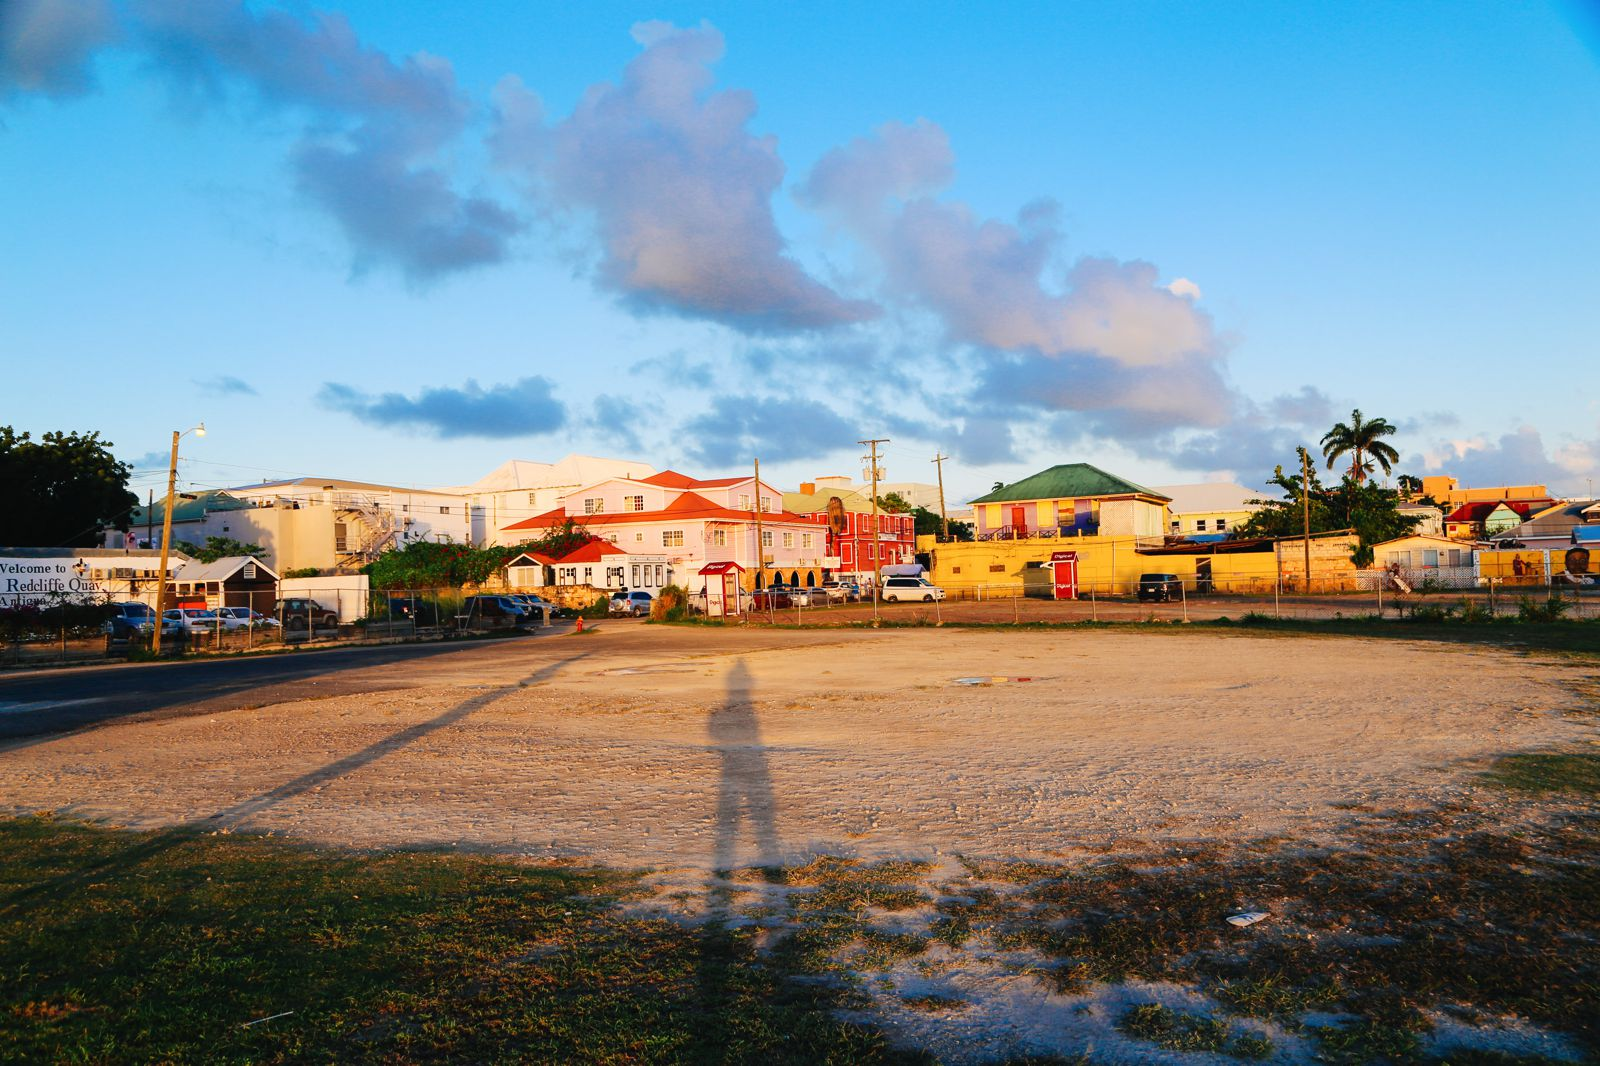 Caribbean Photo Diary - An Evening In St John's, Antigua (6)